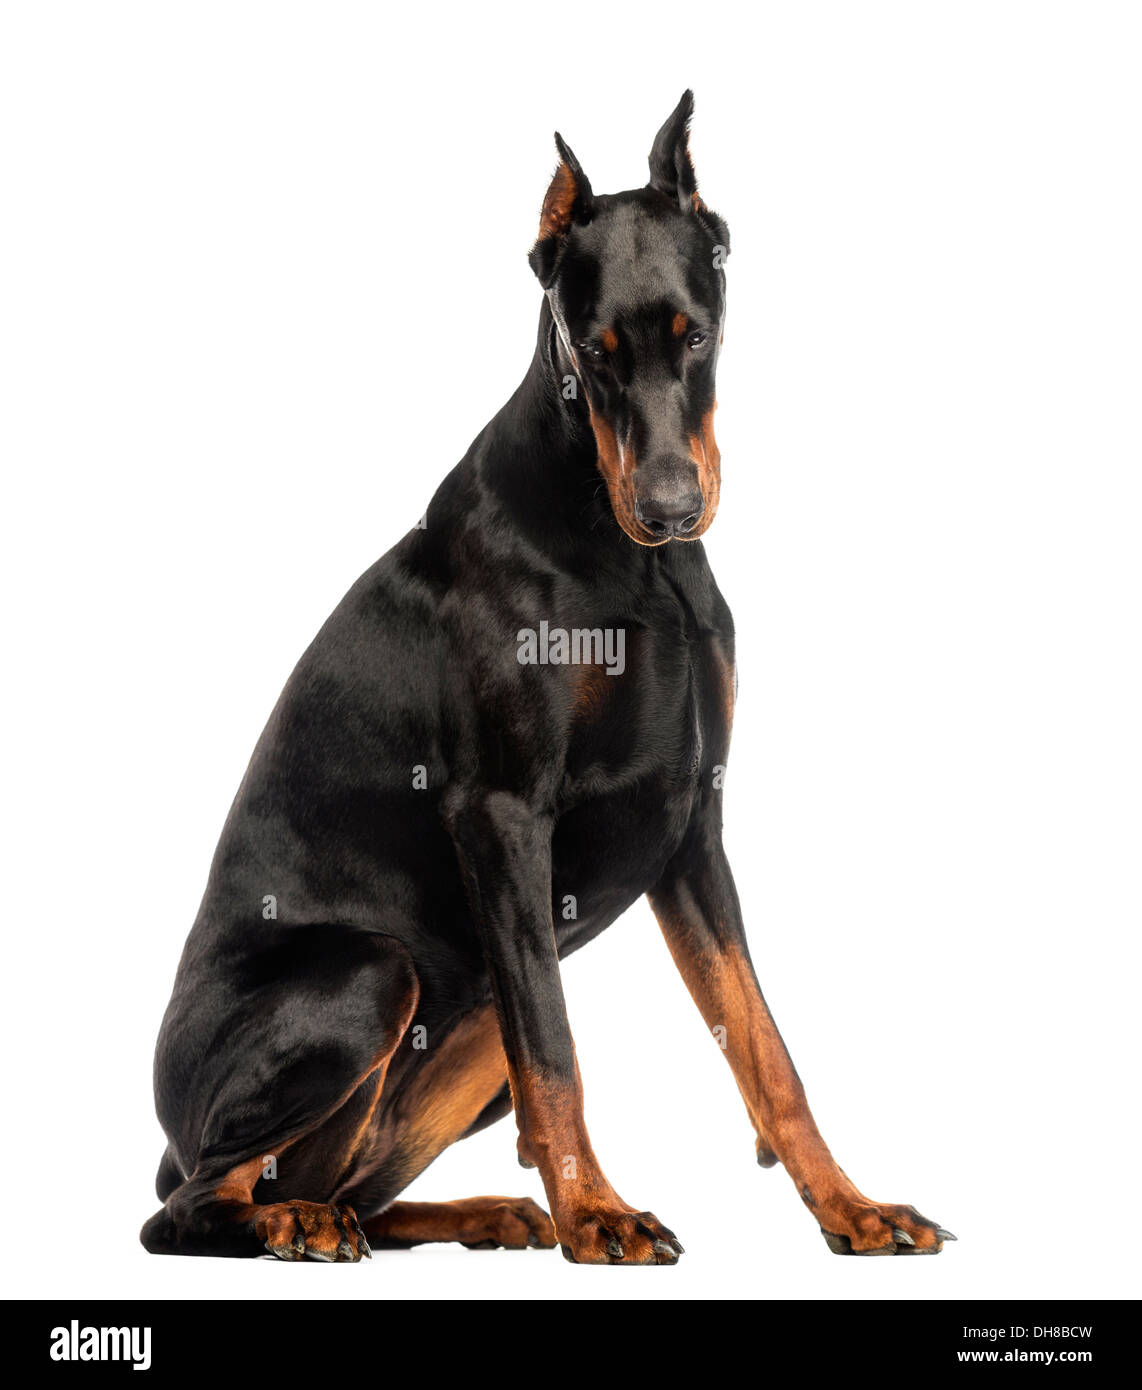 Doberman Pinscher sitting, looking down against white background - Stock Image